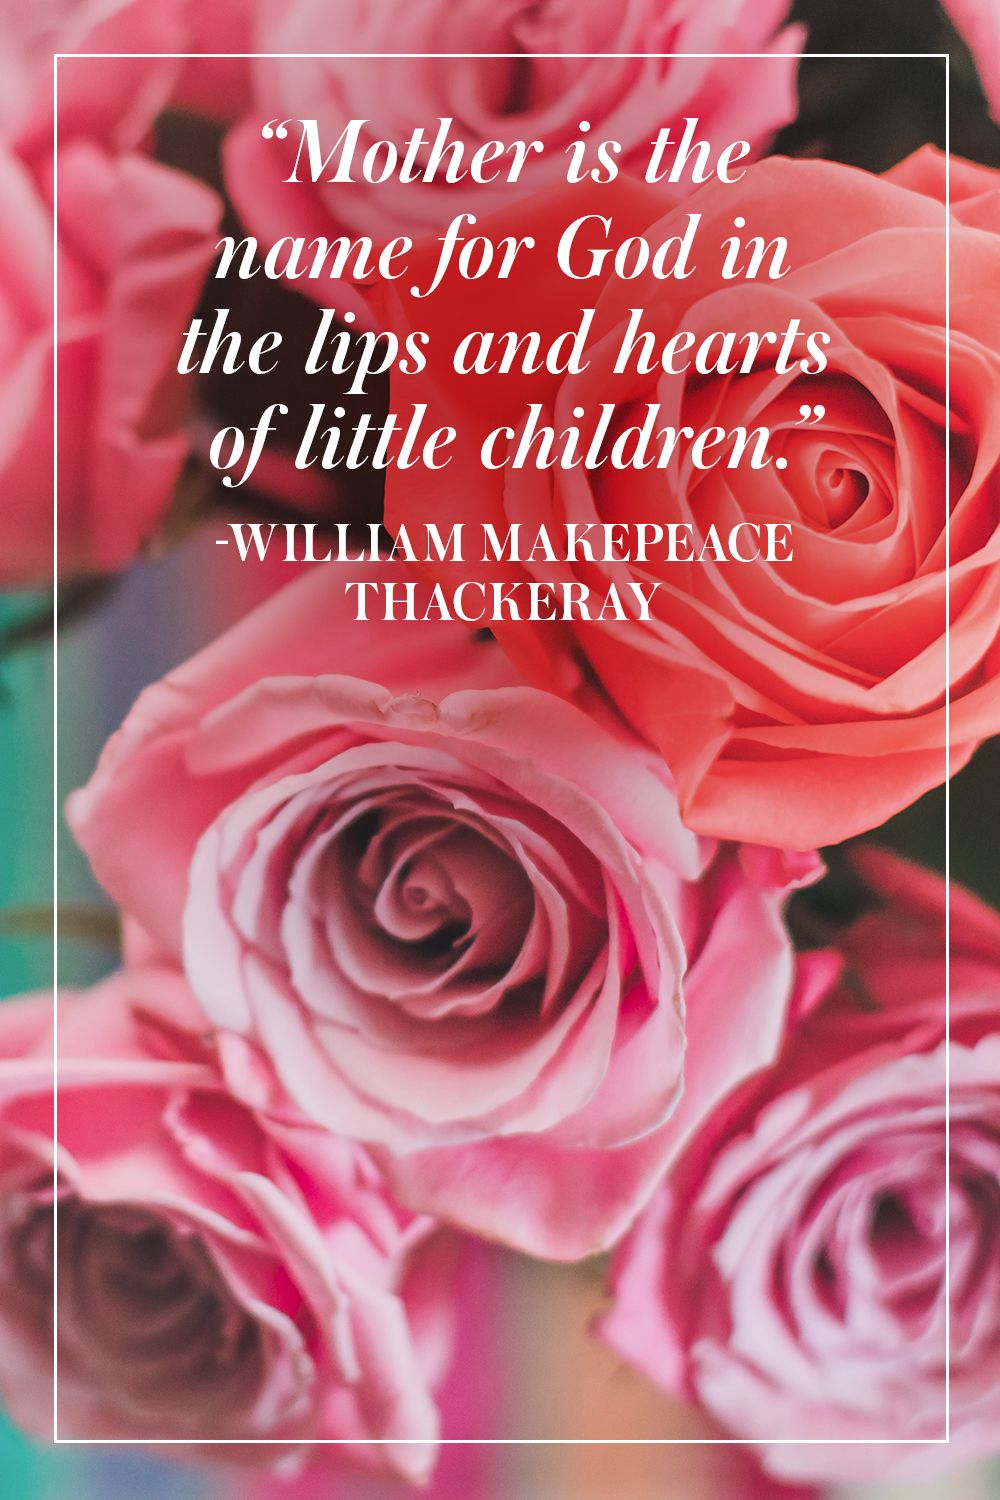 """""""Mother is the name for God in the lips and hearts of little children."""" -William Makepeace Thackeray"""